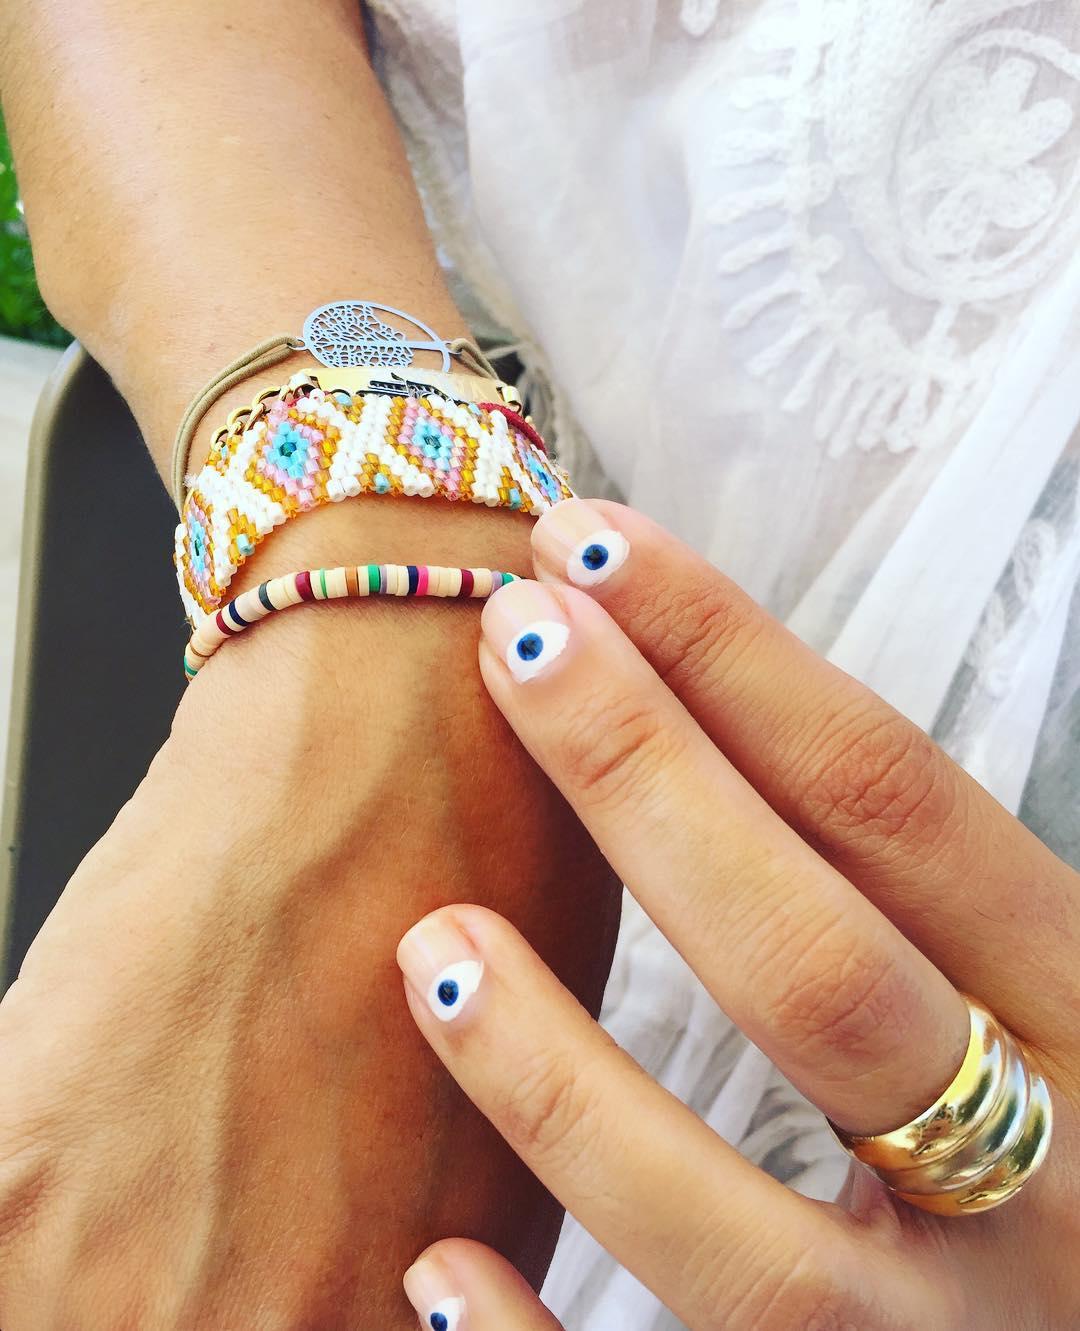 40 Awesome Boho Nail Art Ideas to Adorn Your Nails With